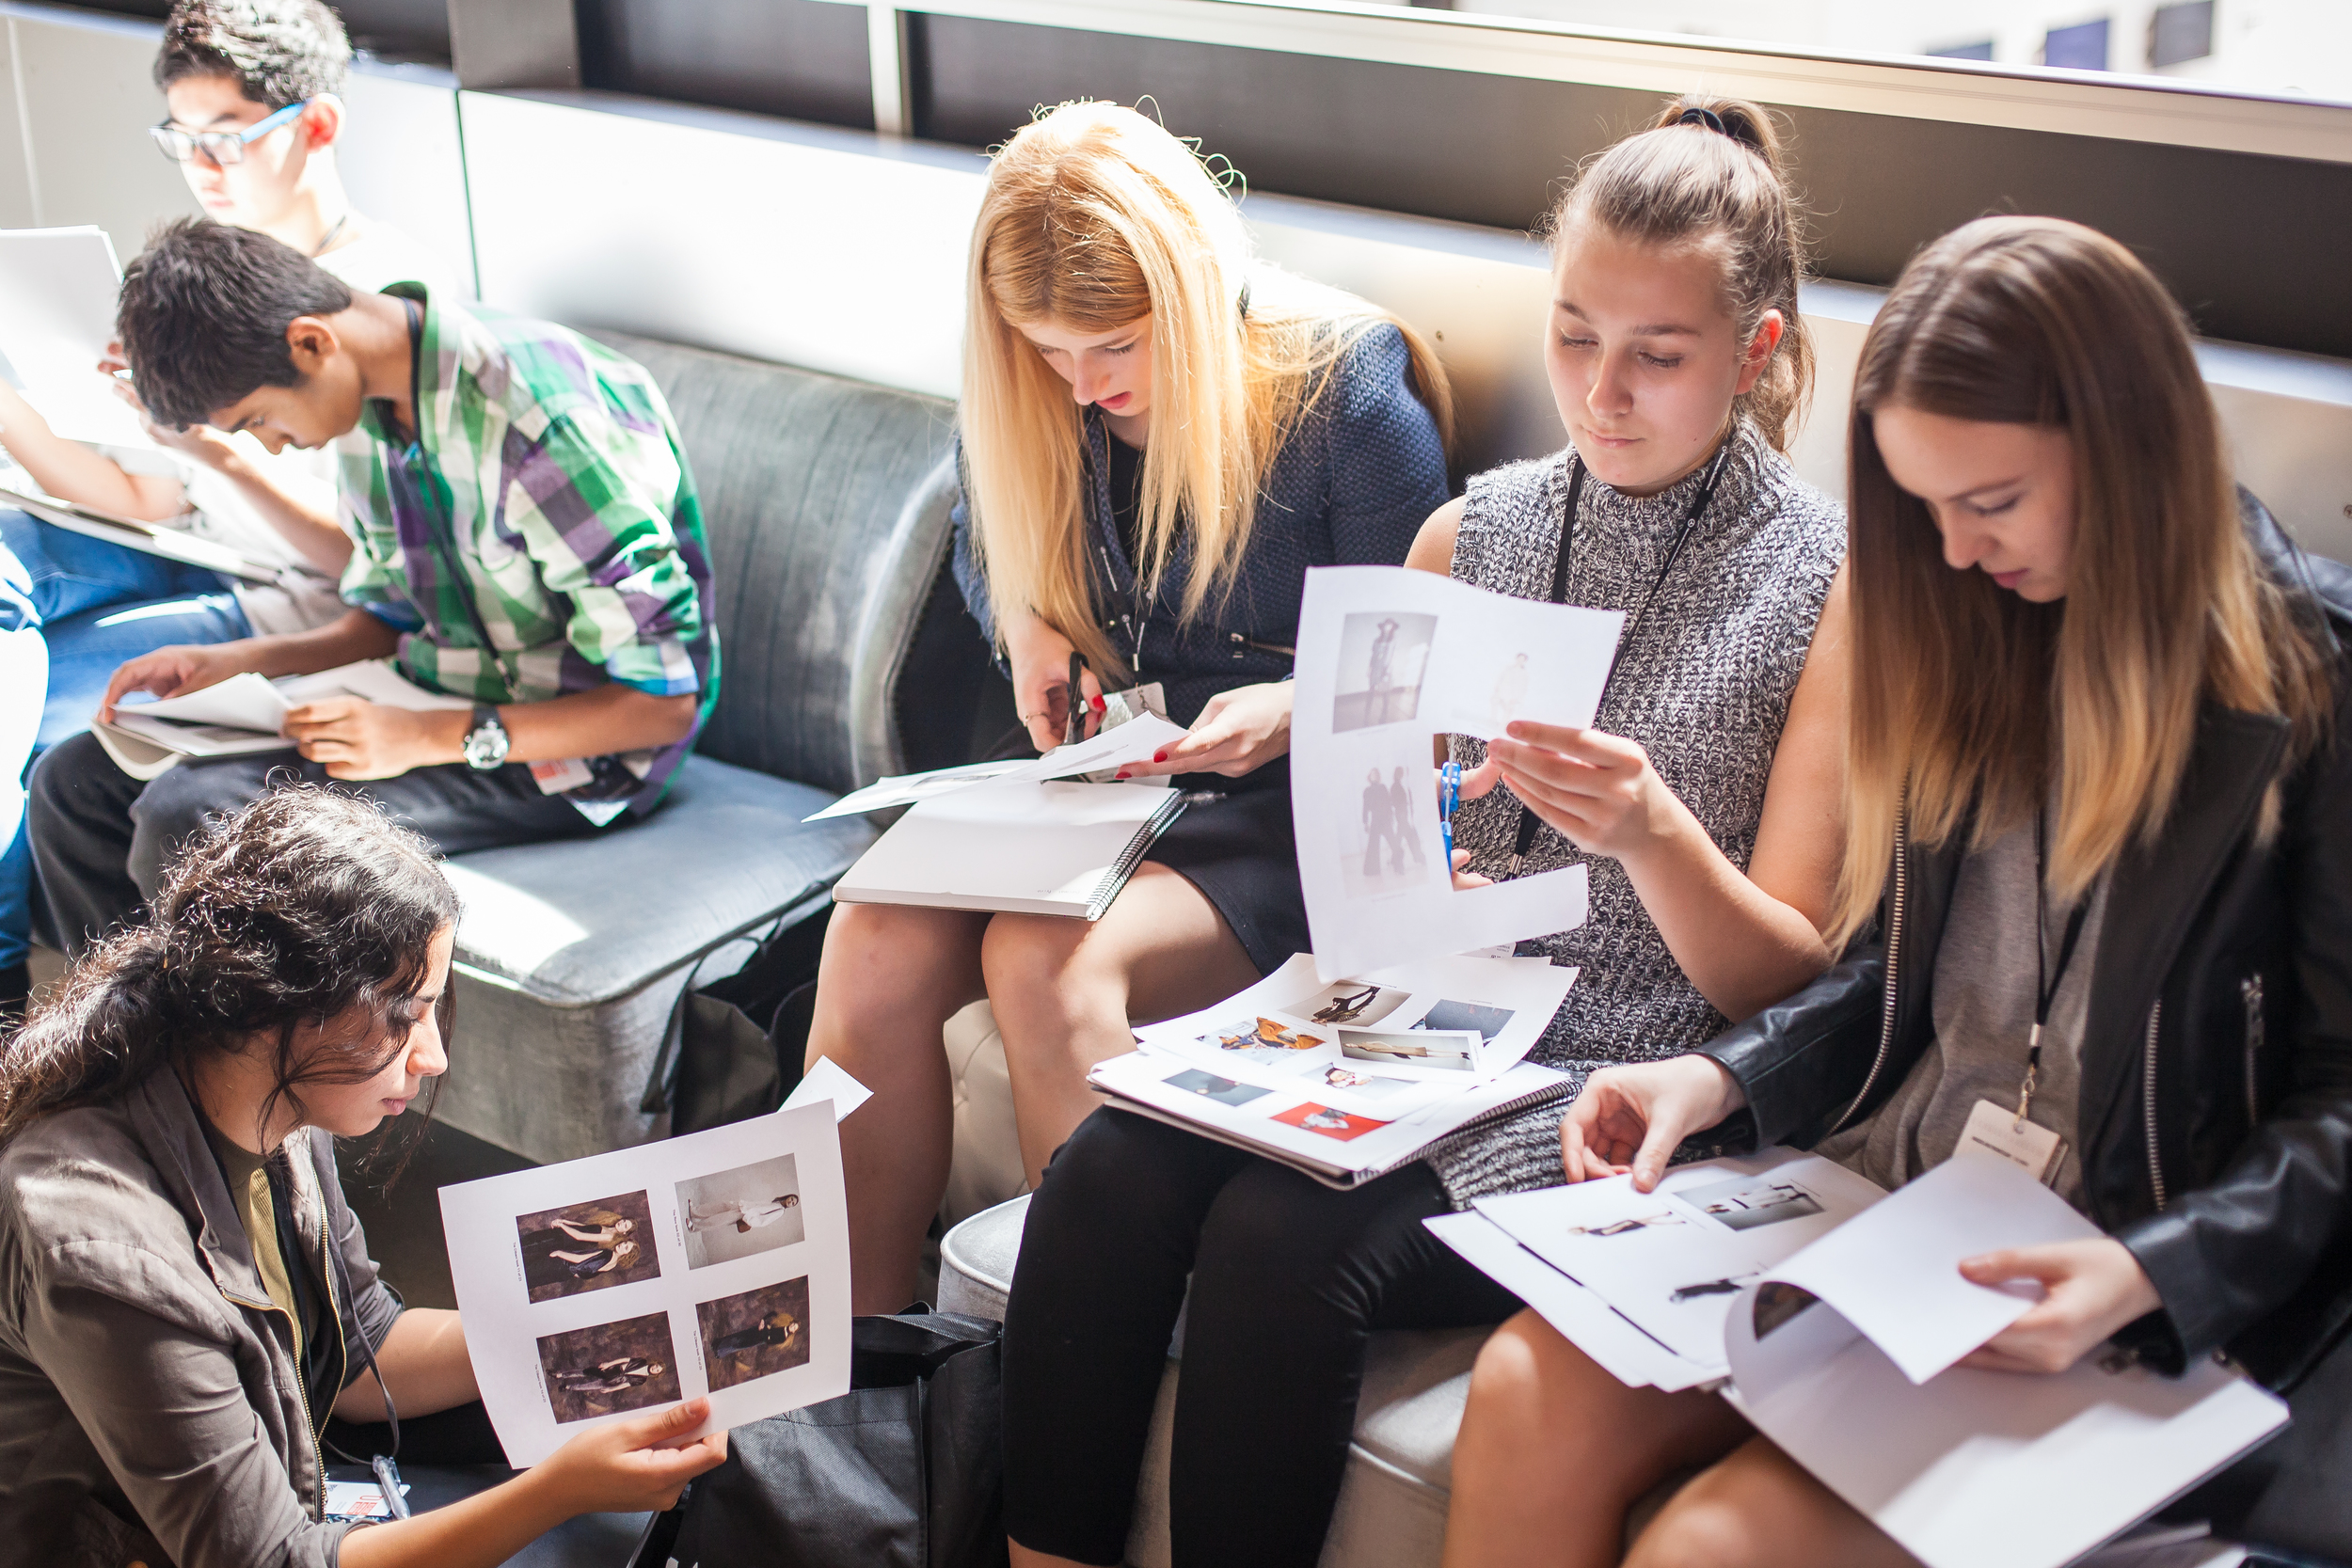 Sorting the latest trends, workshop led by Danica Osland from Vogue Australia